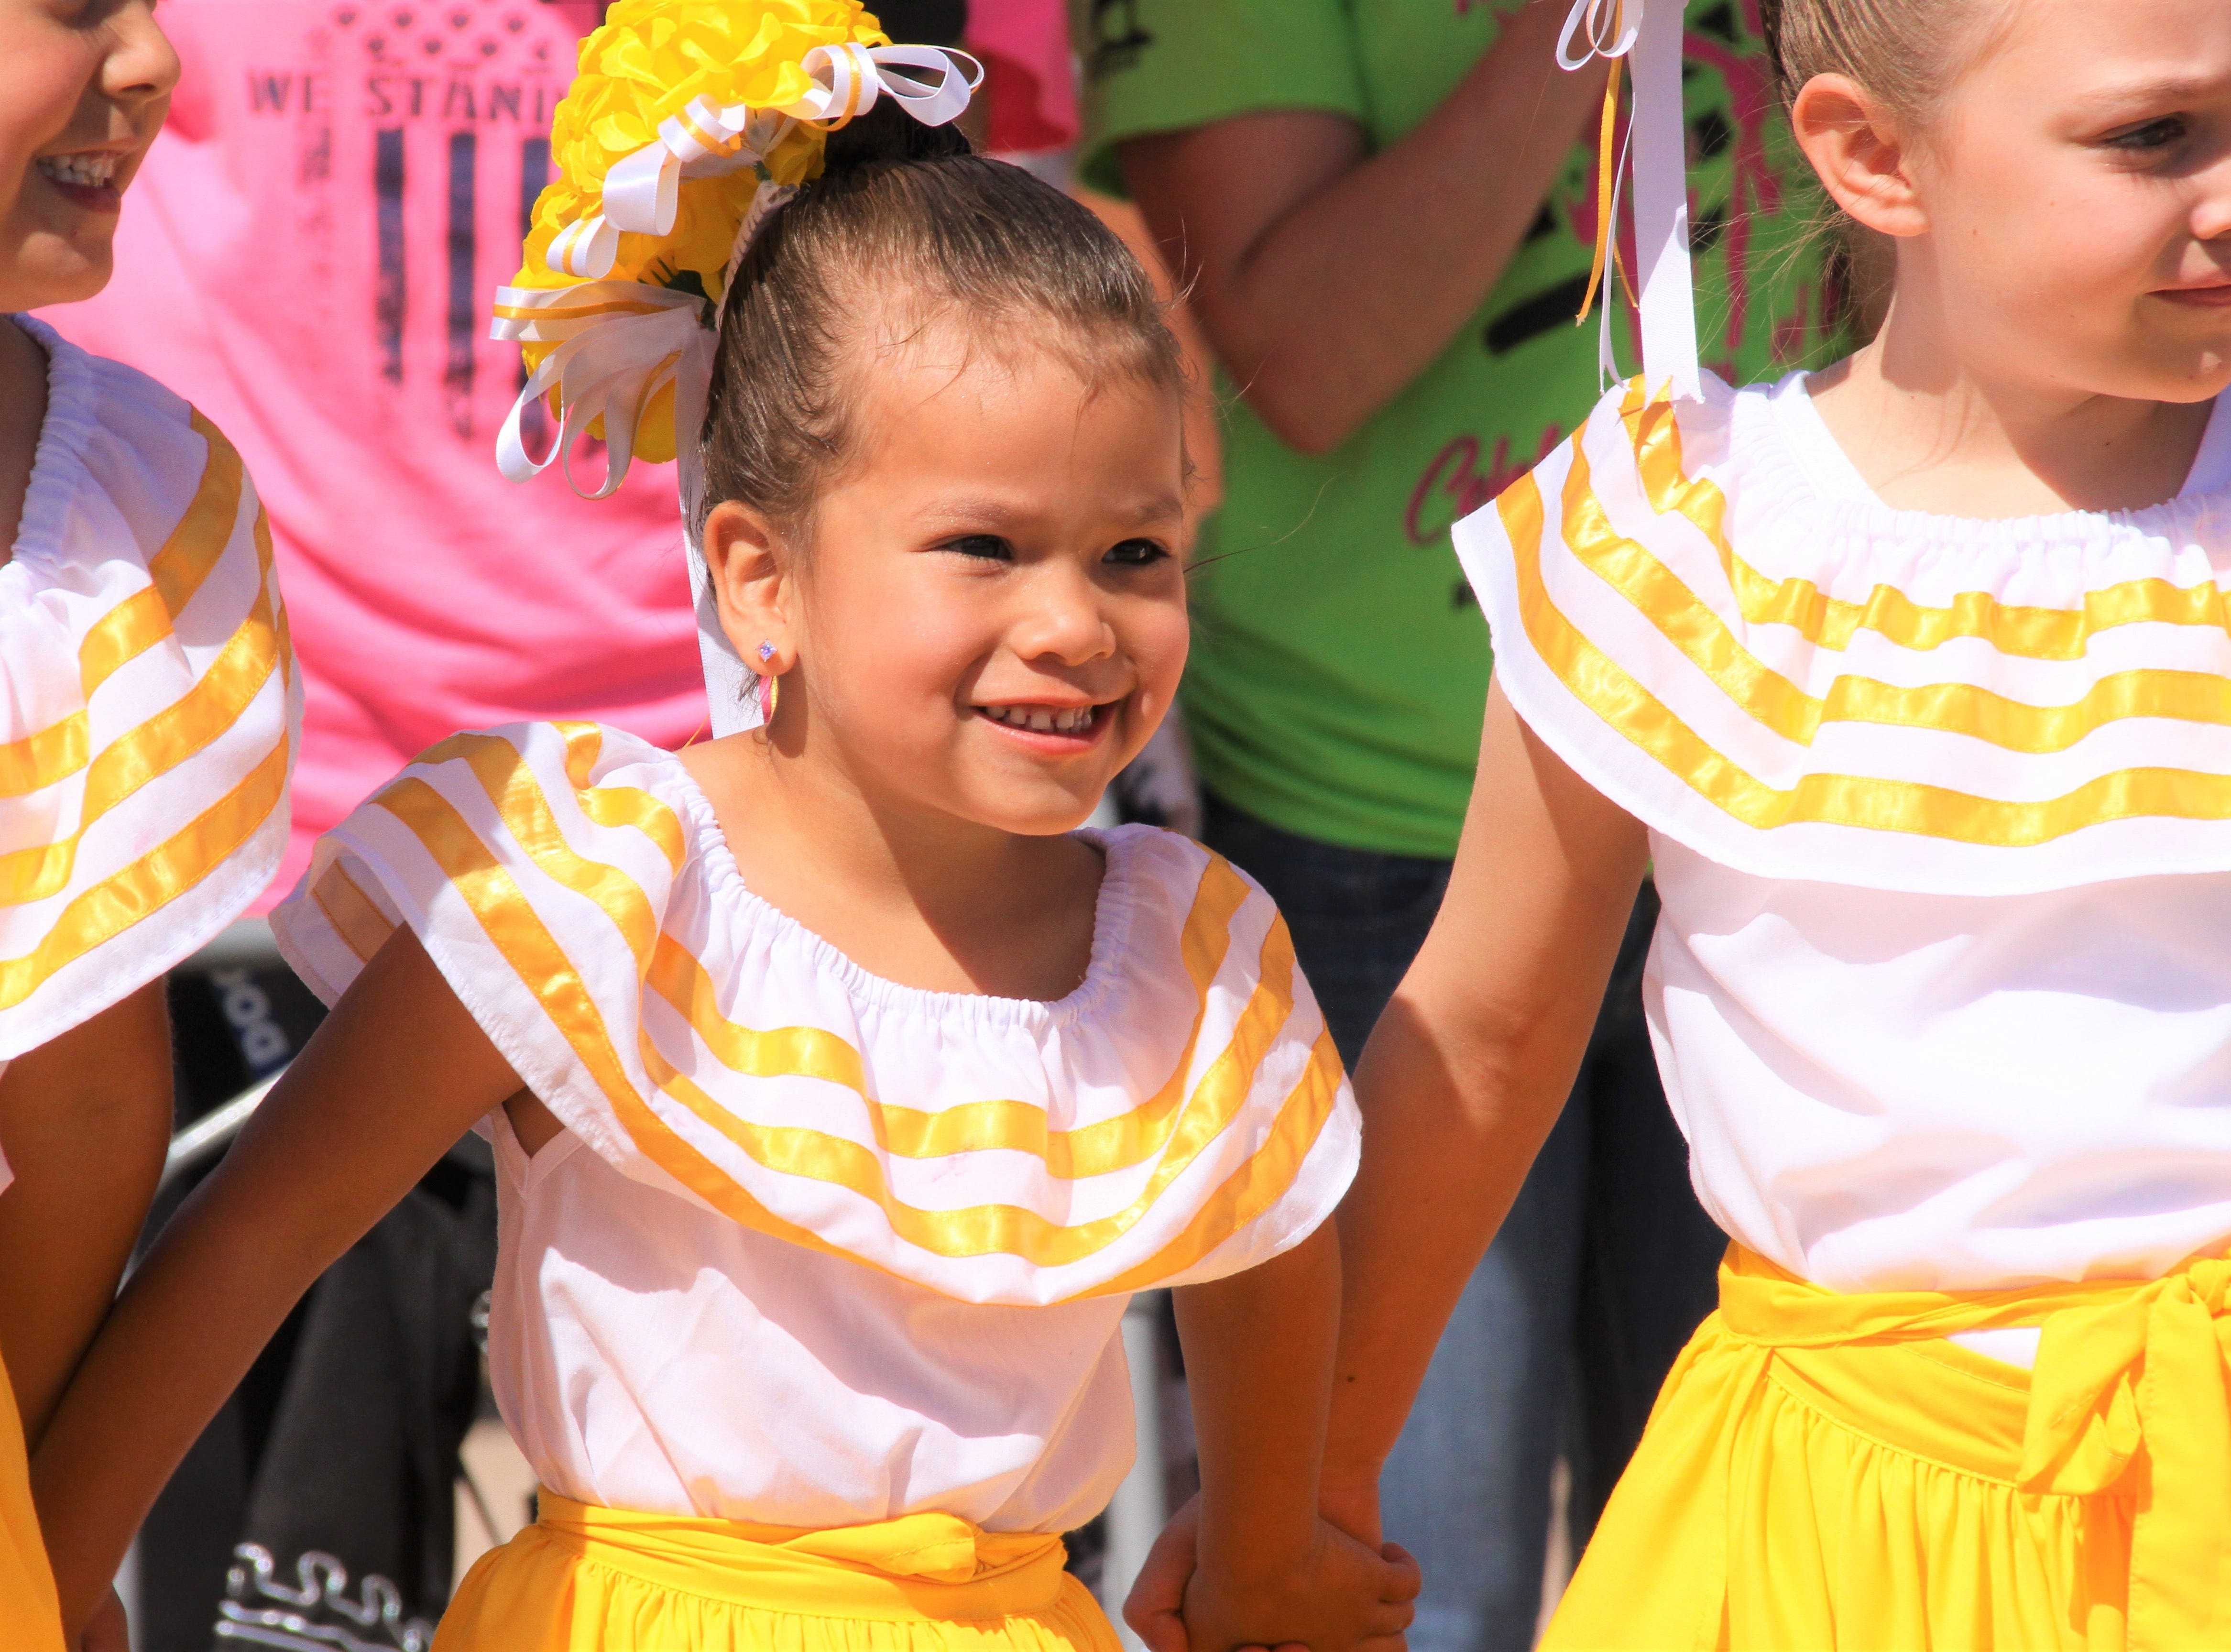 Natalie Costilla was all smiles when she and her Luna Star team danced to children's songs in Spanish at the Celebration of Life walk.